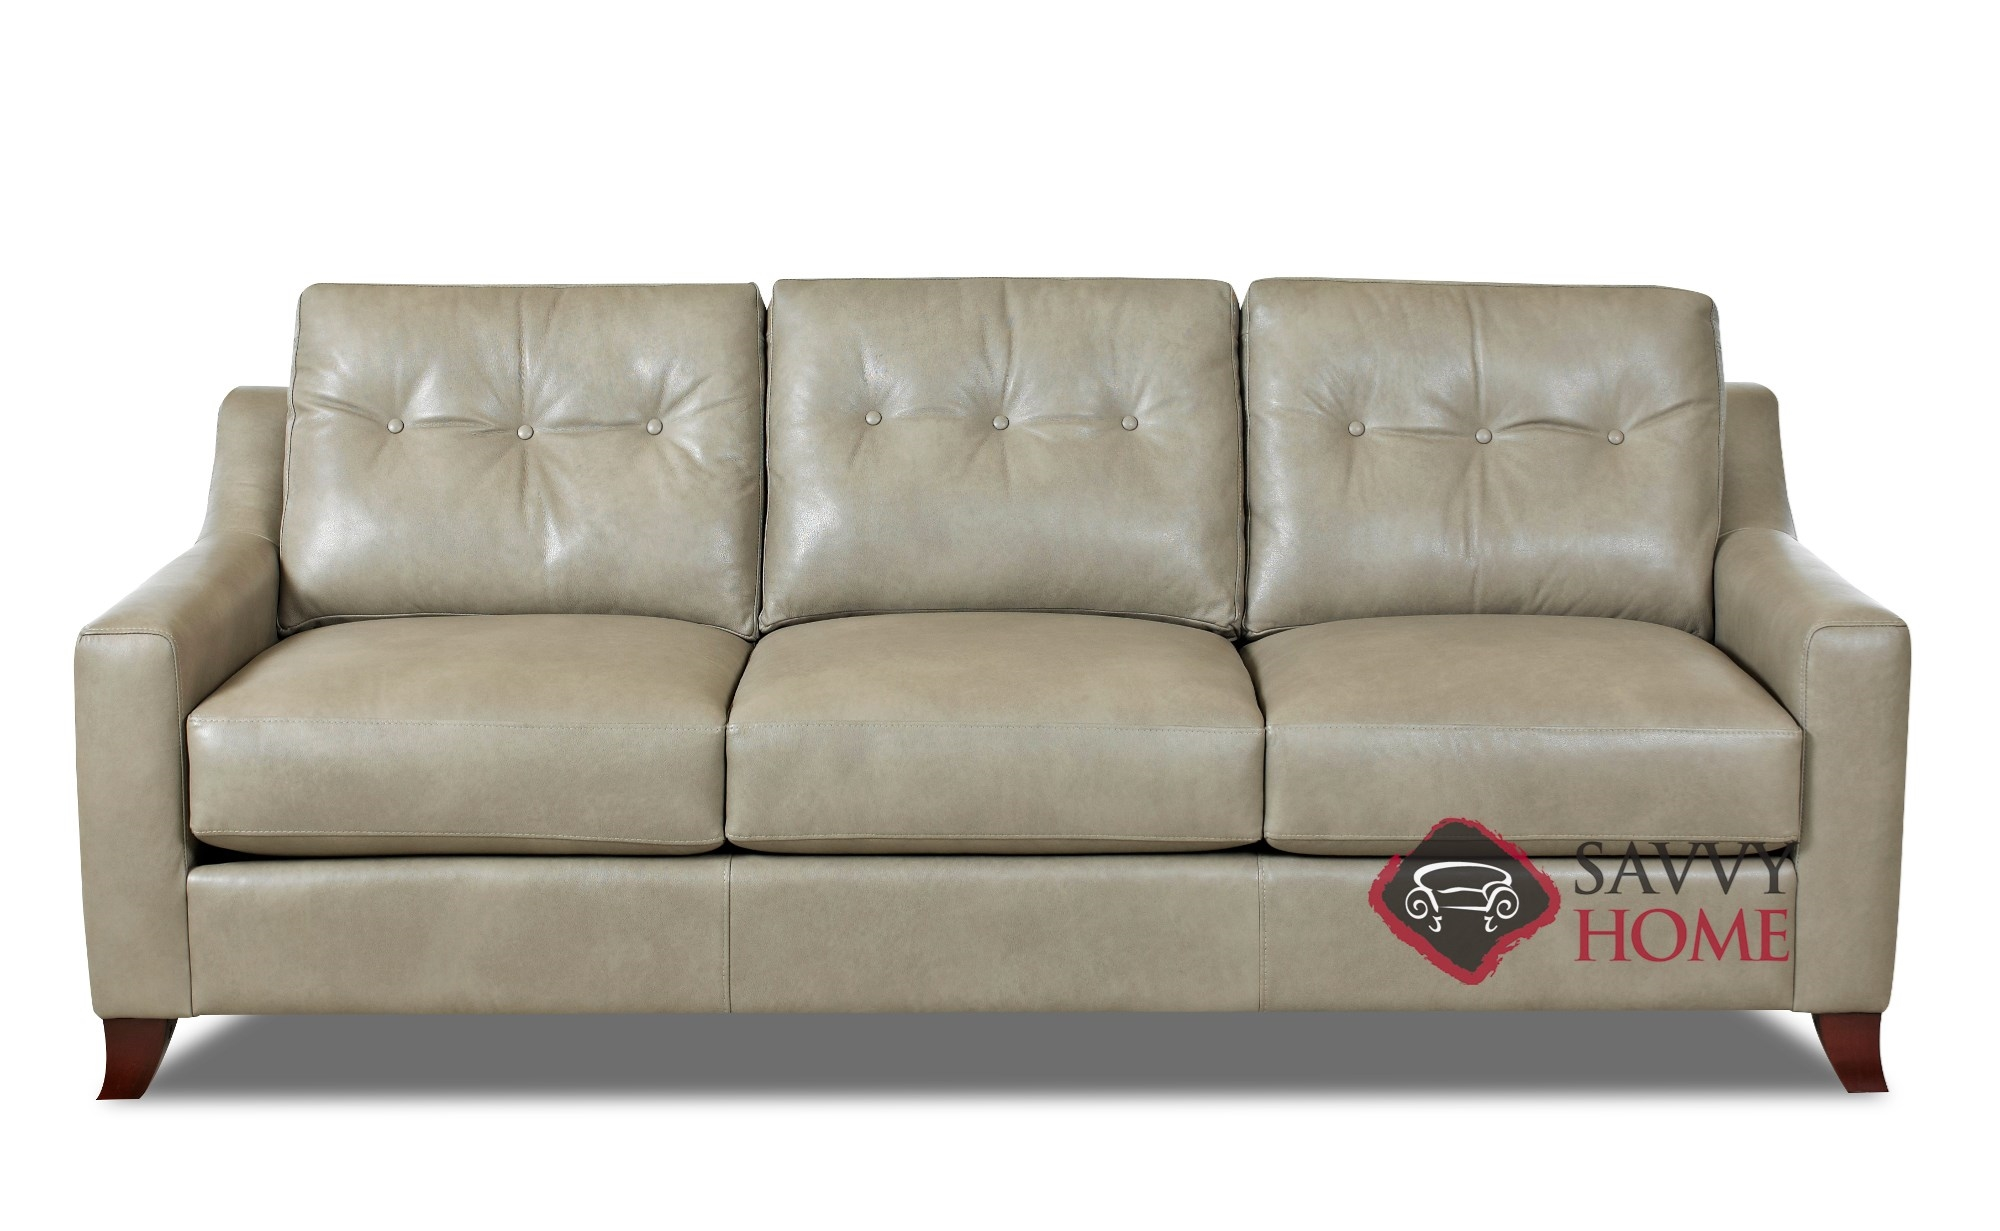 Austin Leather Stationary Sofa by Savvy is Fully Customizable by You ...